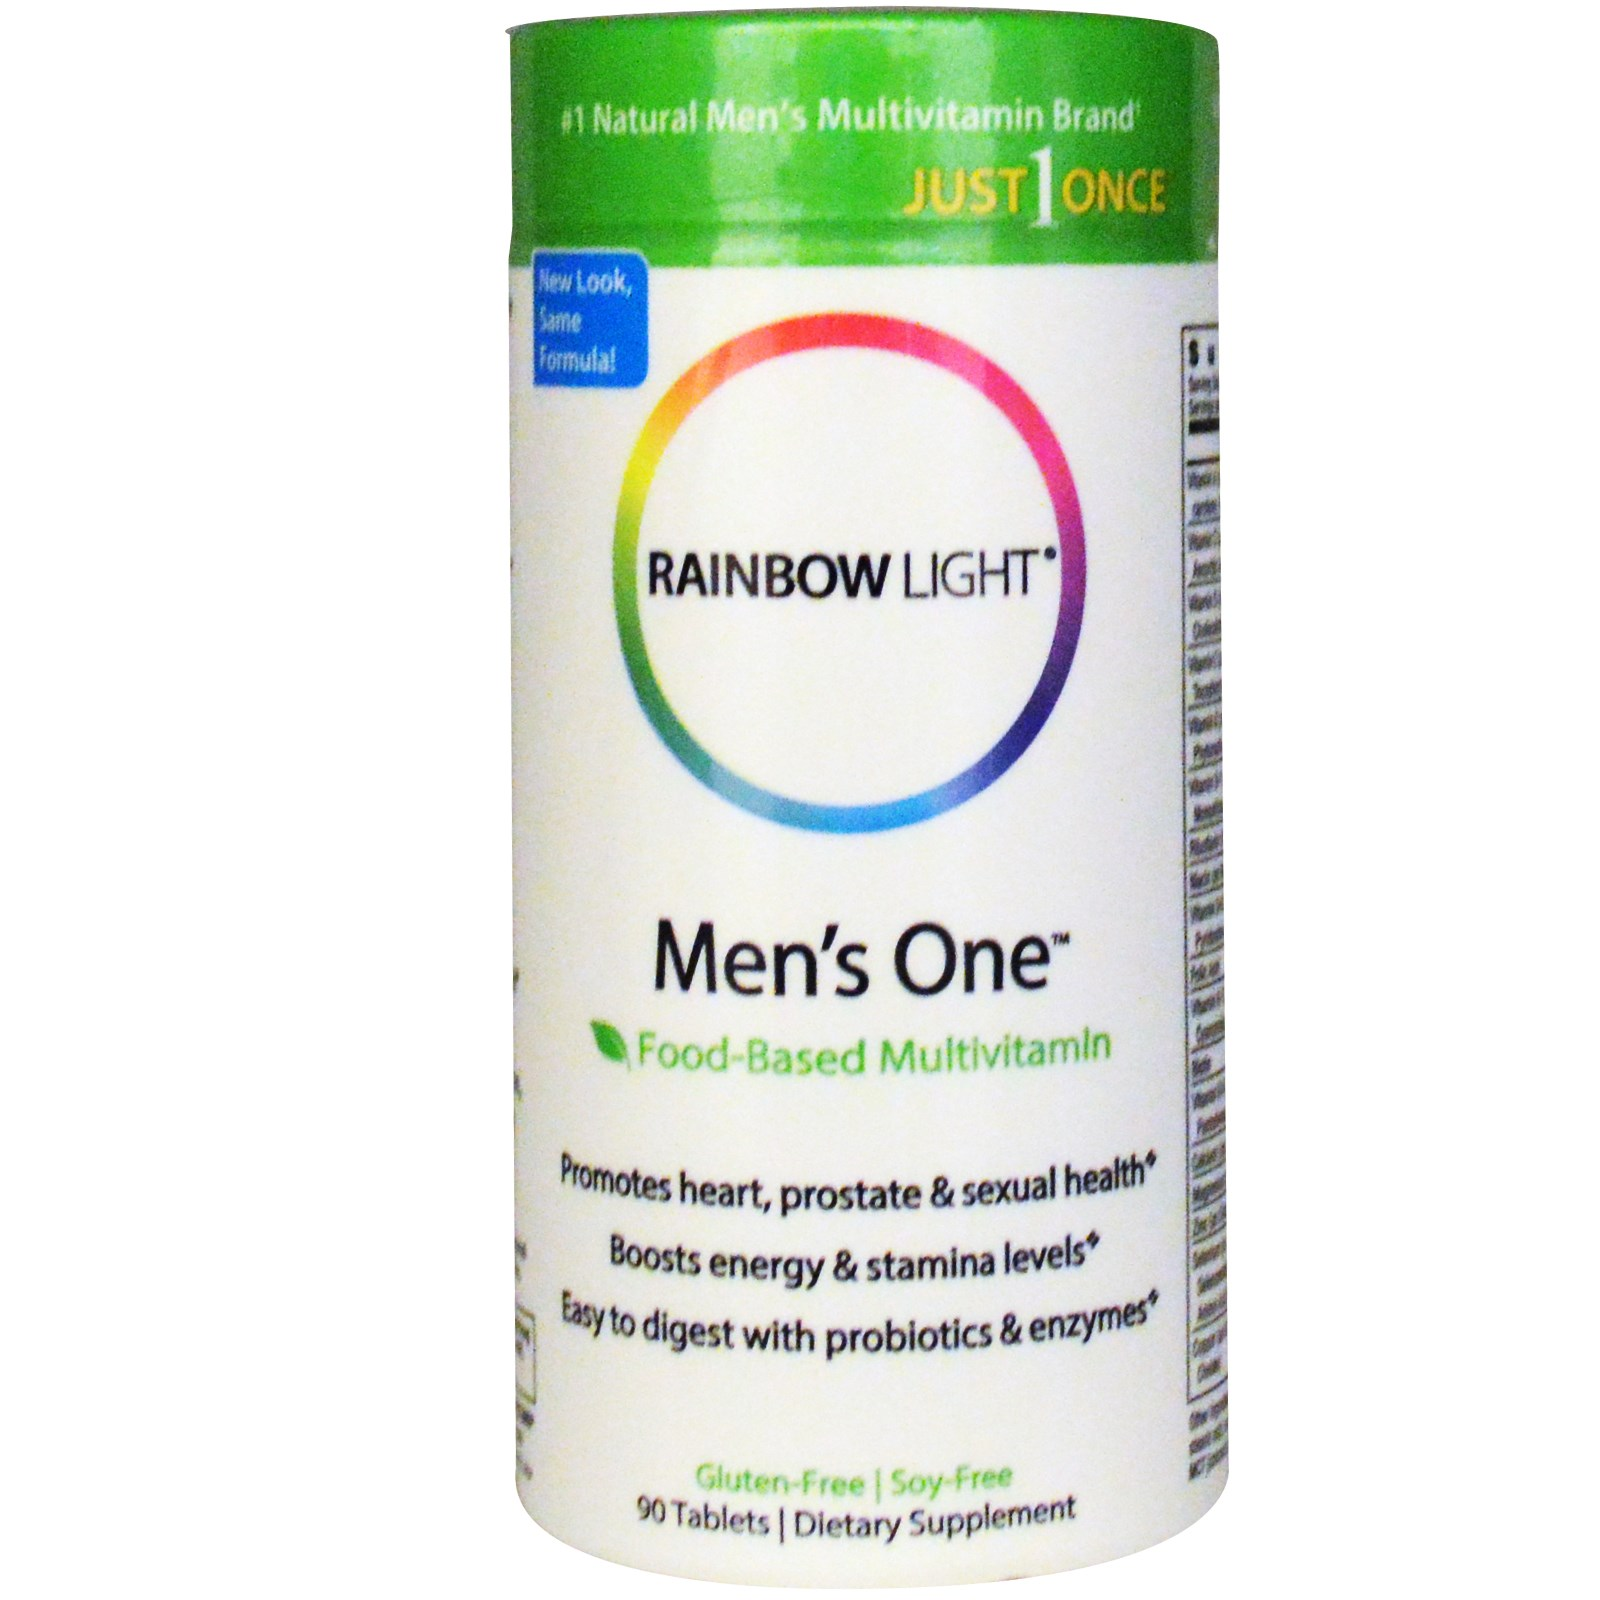 Daily Mulitvitamin for Men